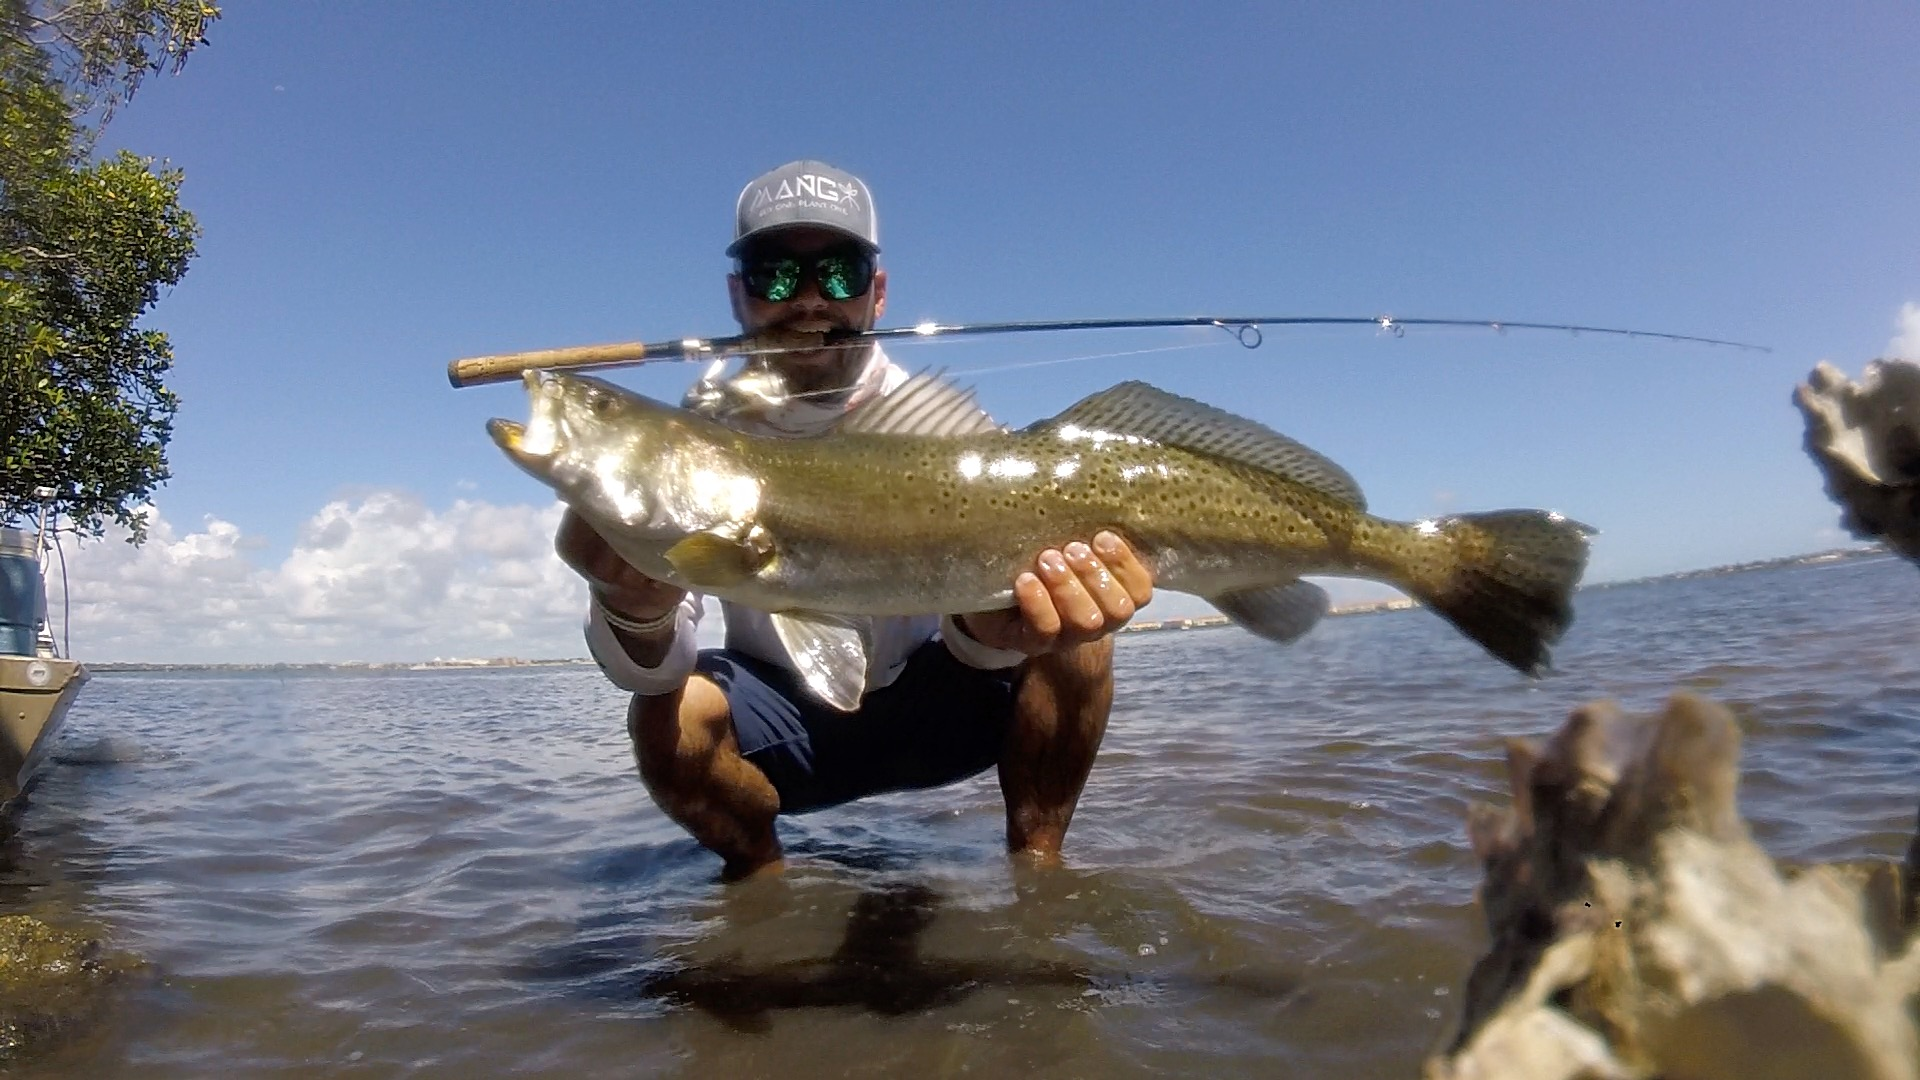 Fort pierce 32 inch trout coastal angler the angler for Indian river inlet fishing tips